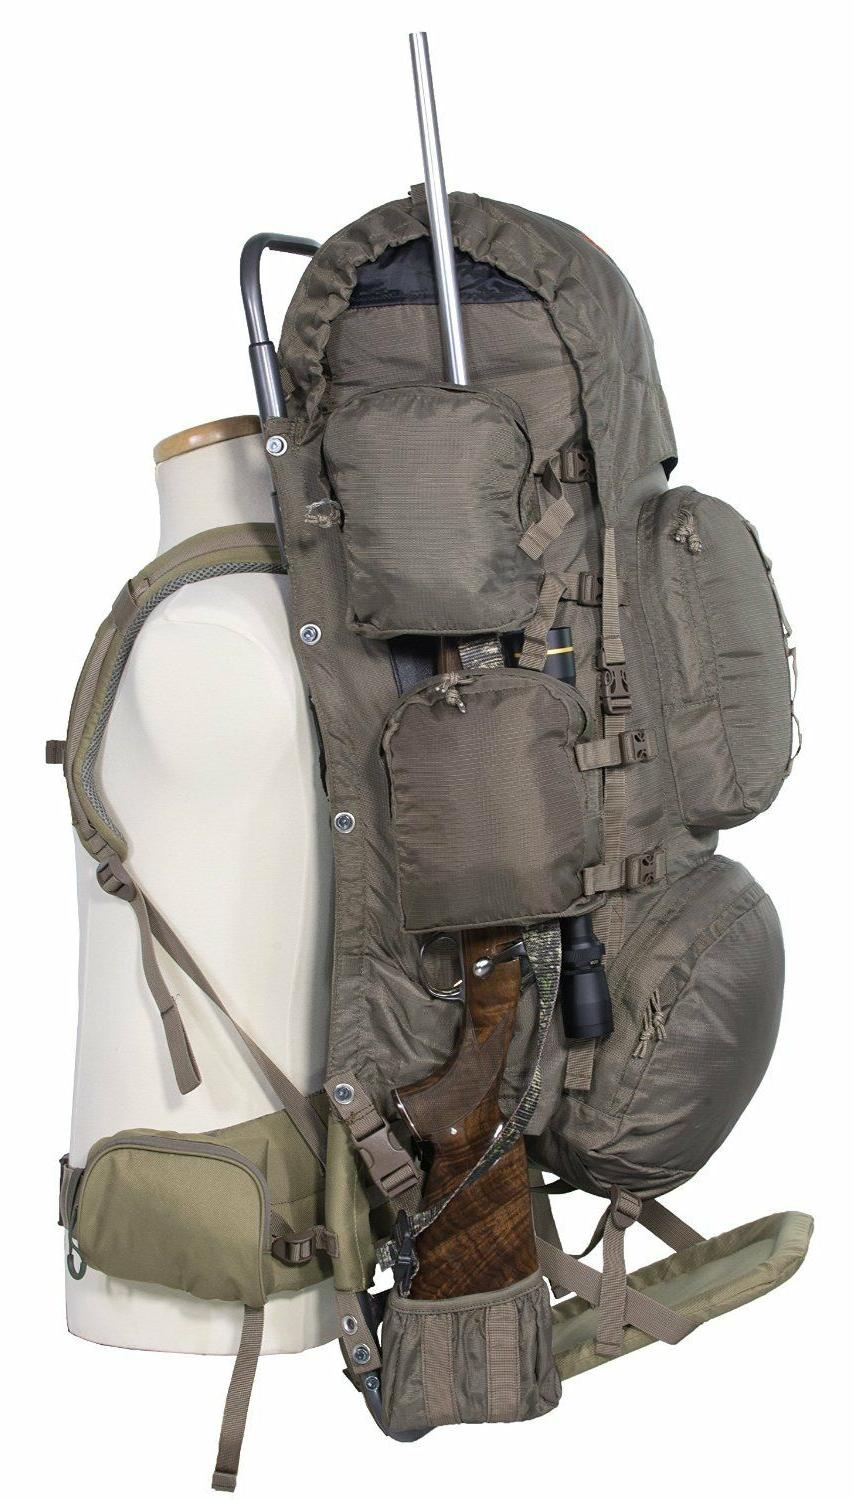 Freighter Frame Pack Gear Bag Hydration Pocket Camping